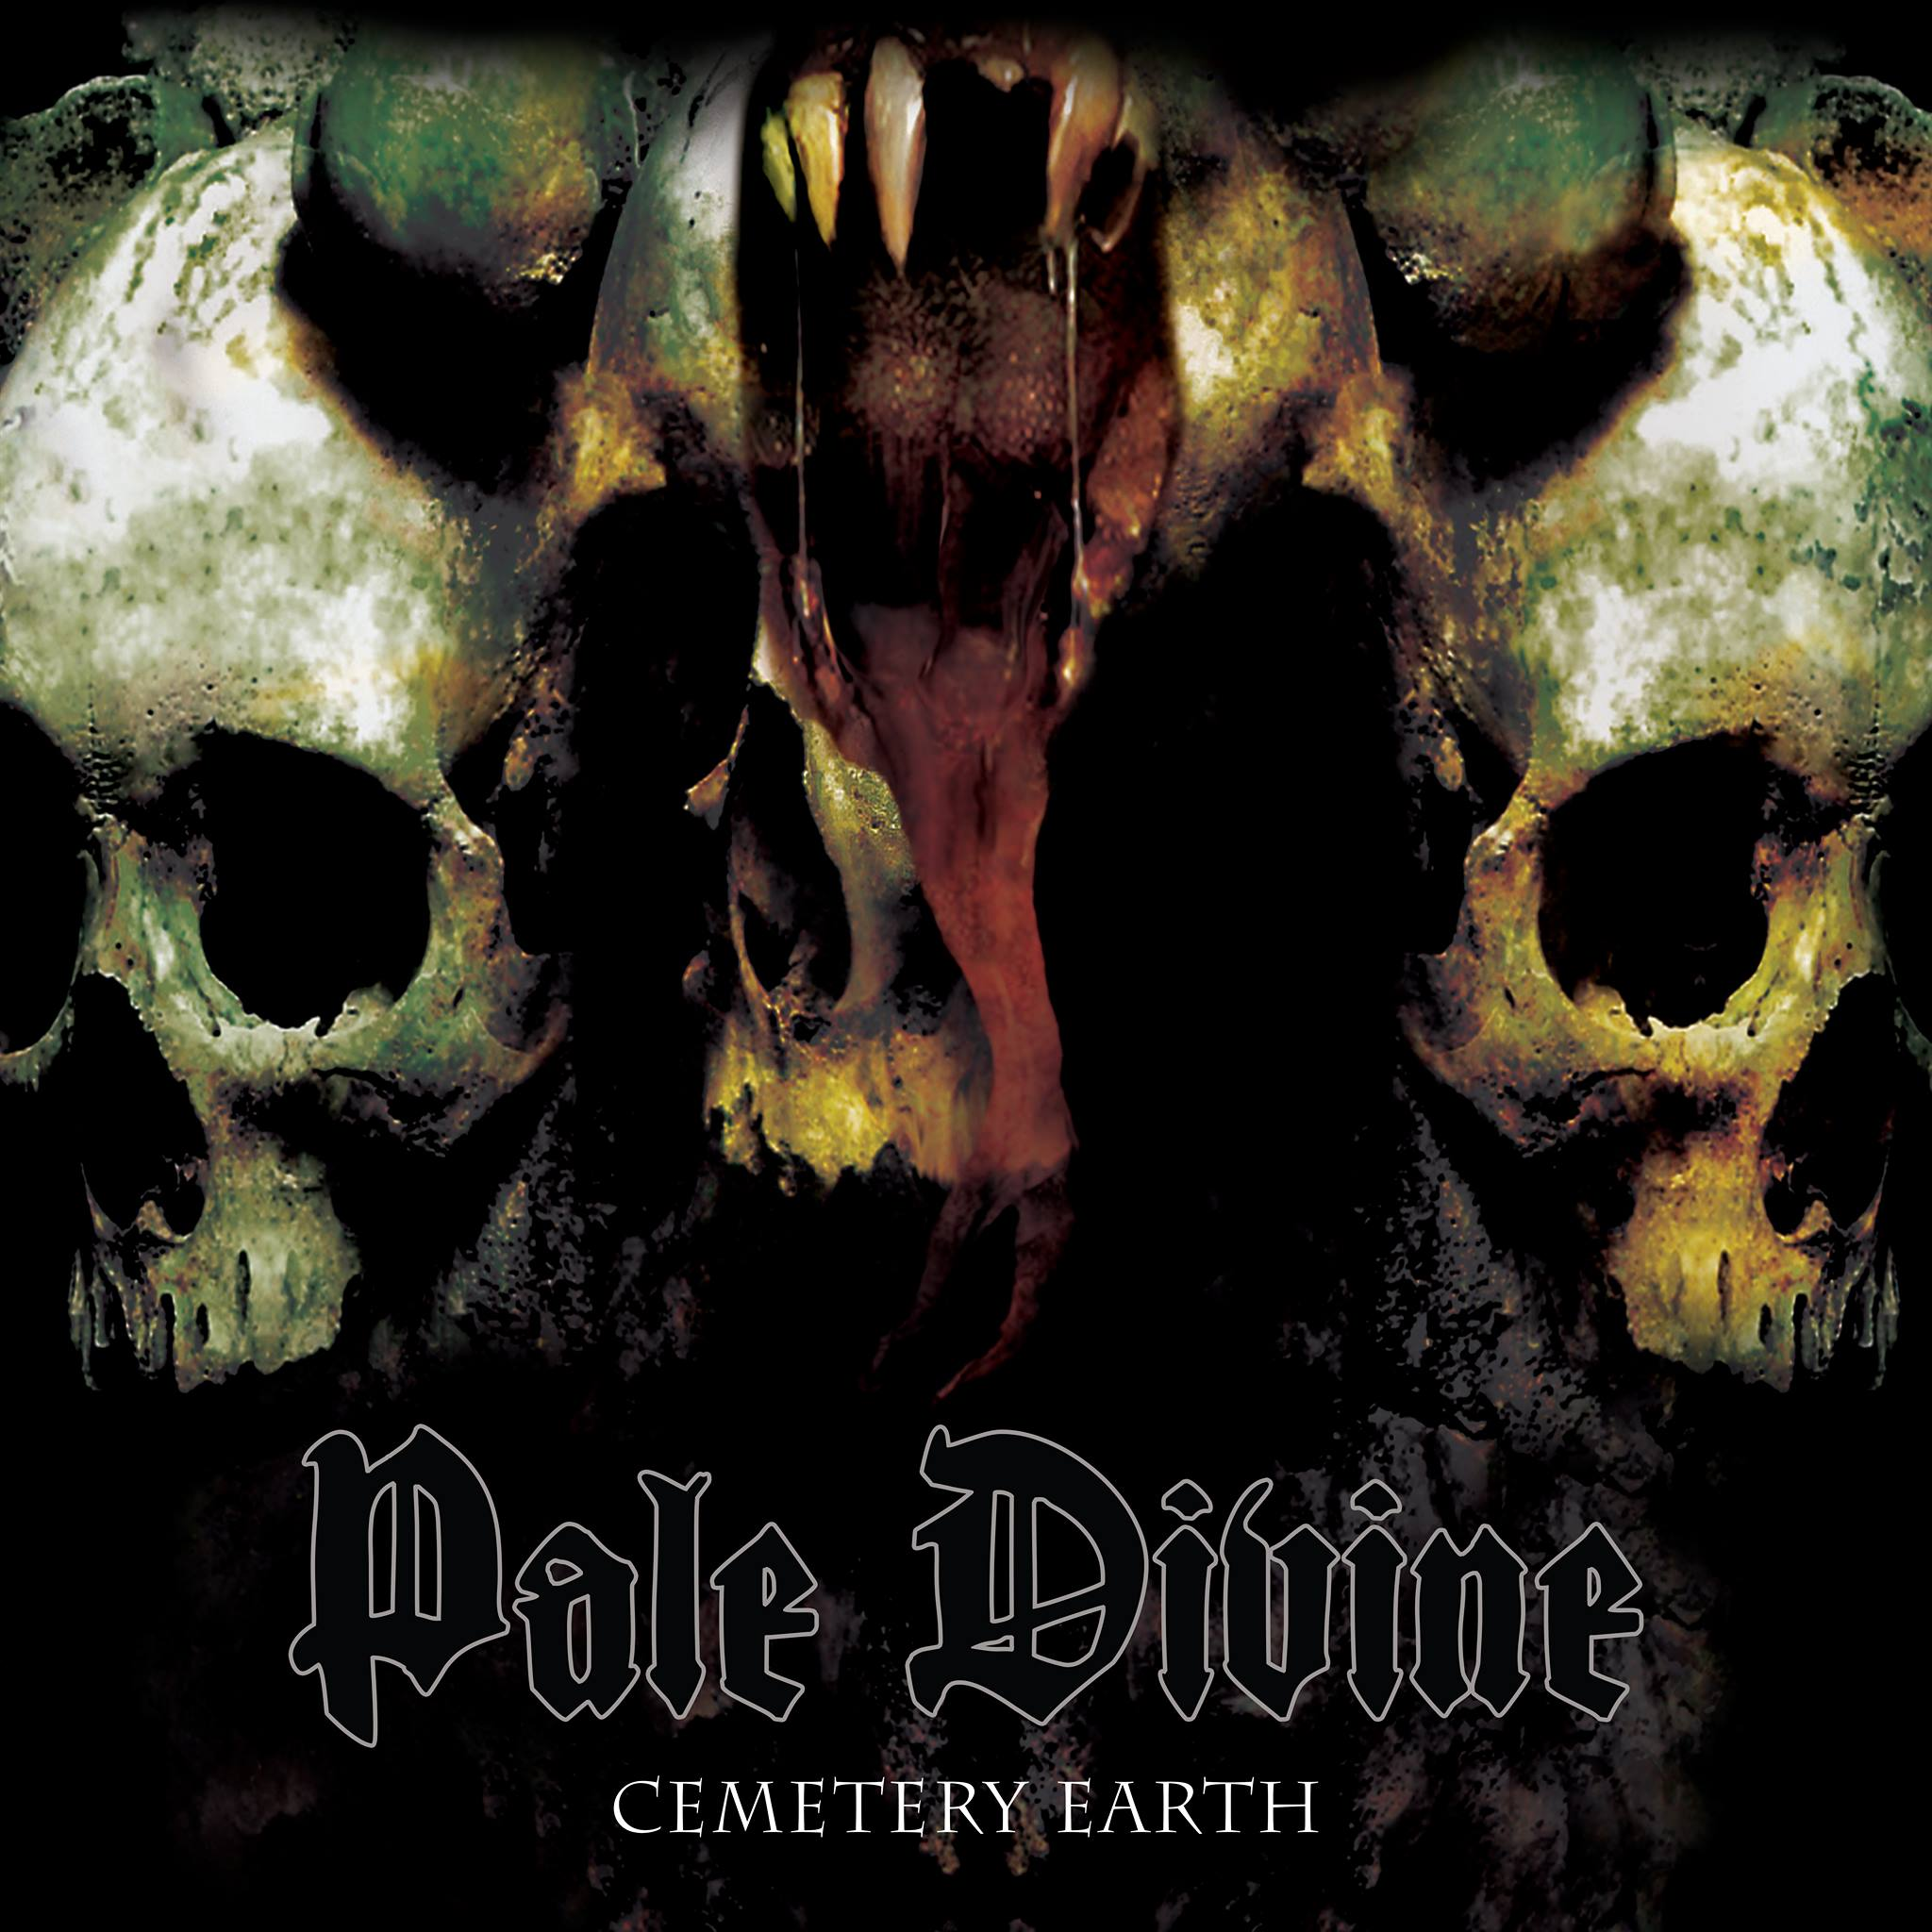 PALE DIVINE CEMETERY EARTH